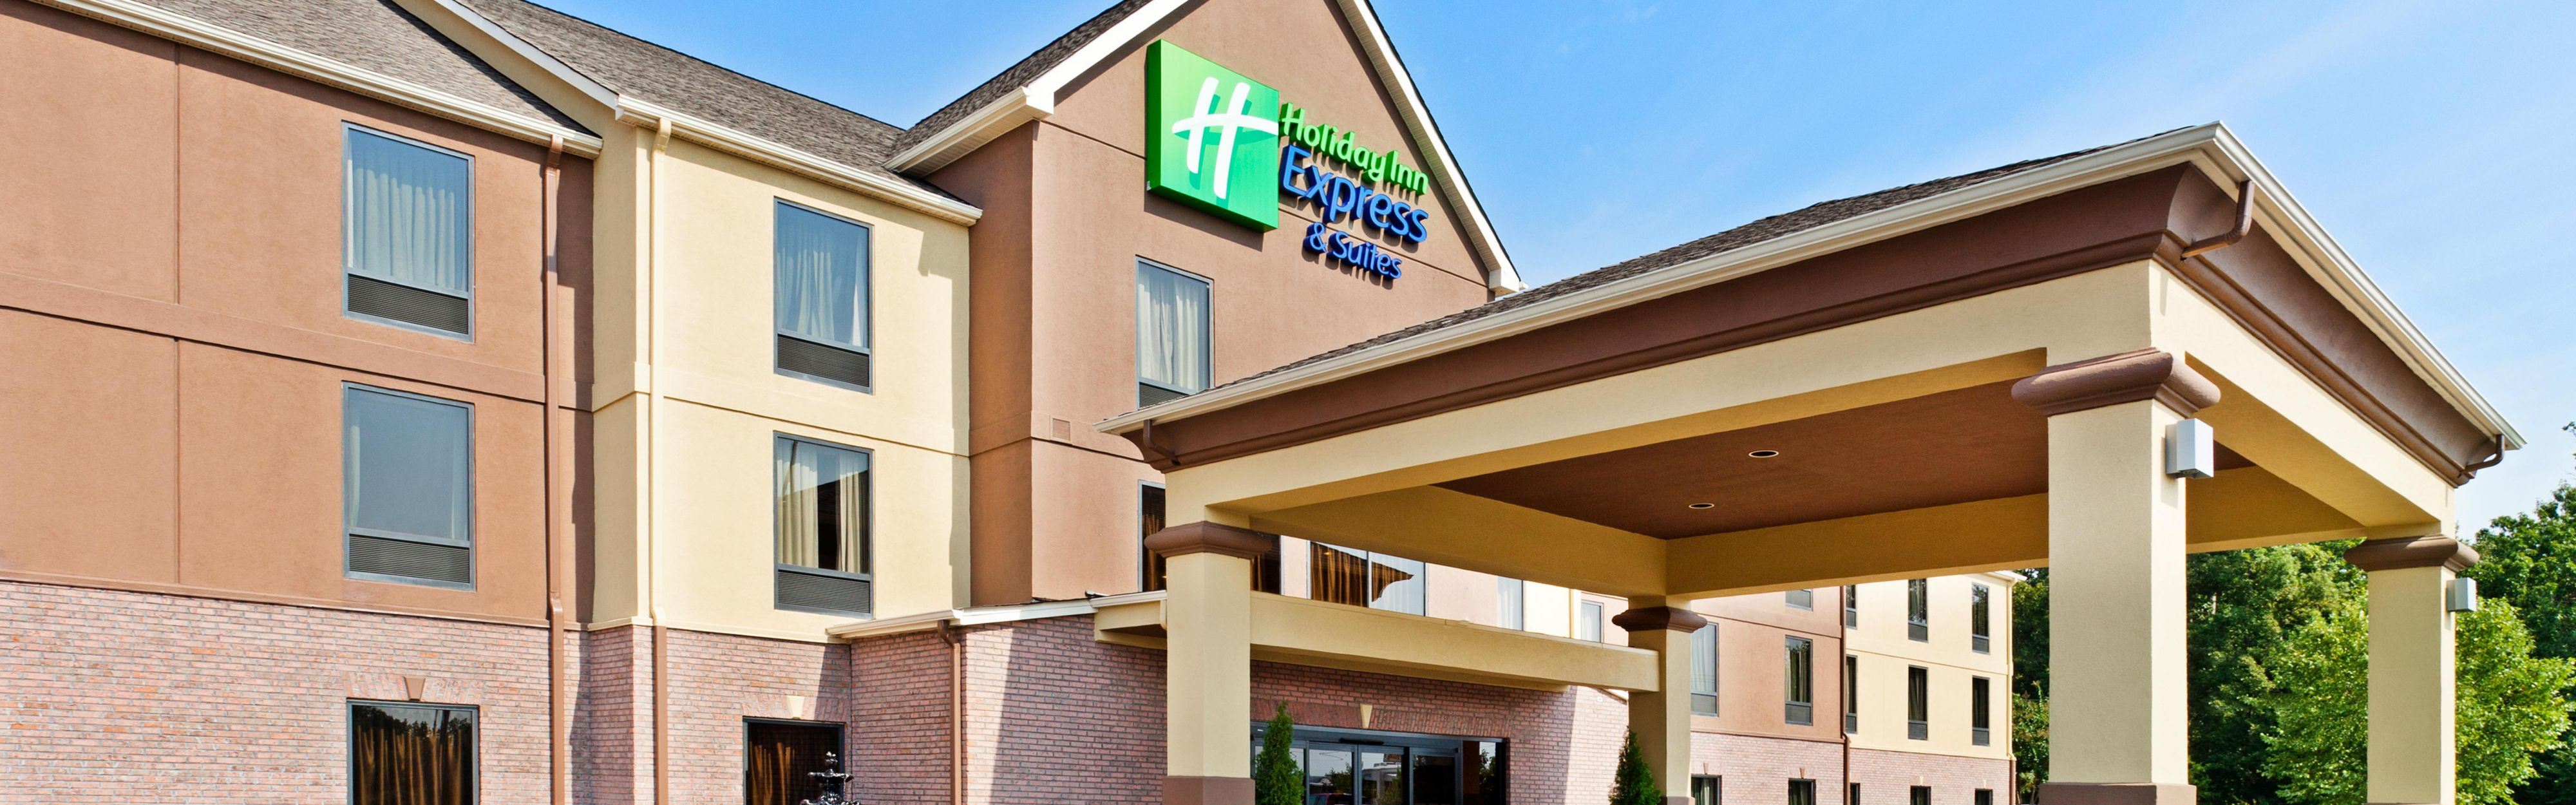 Gallery Of Front Desk Hotel Exterior With Hotels Near Greenville Sc Airport